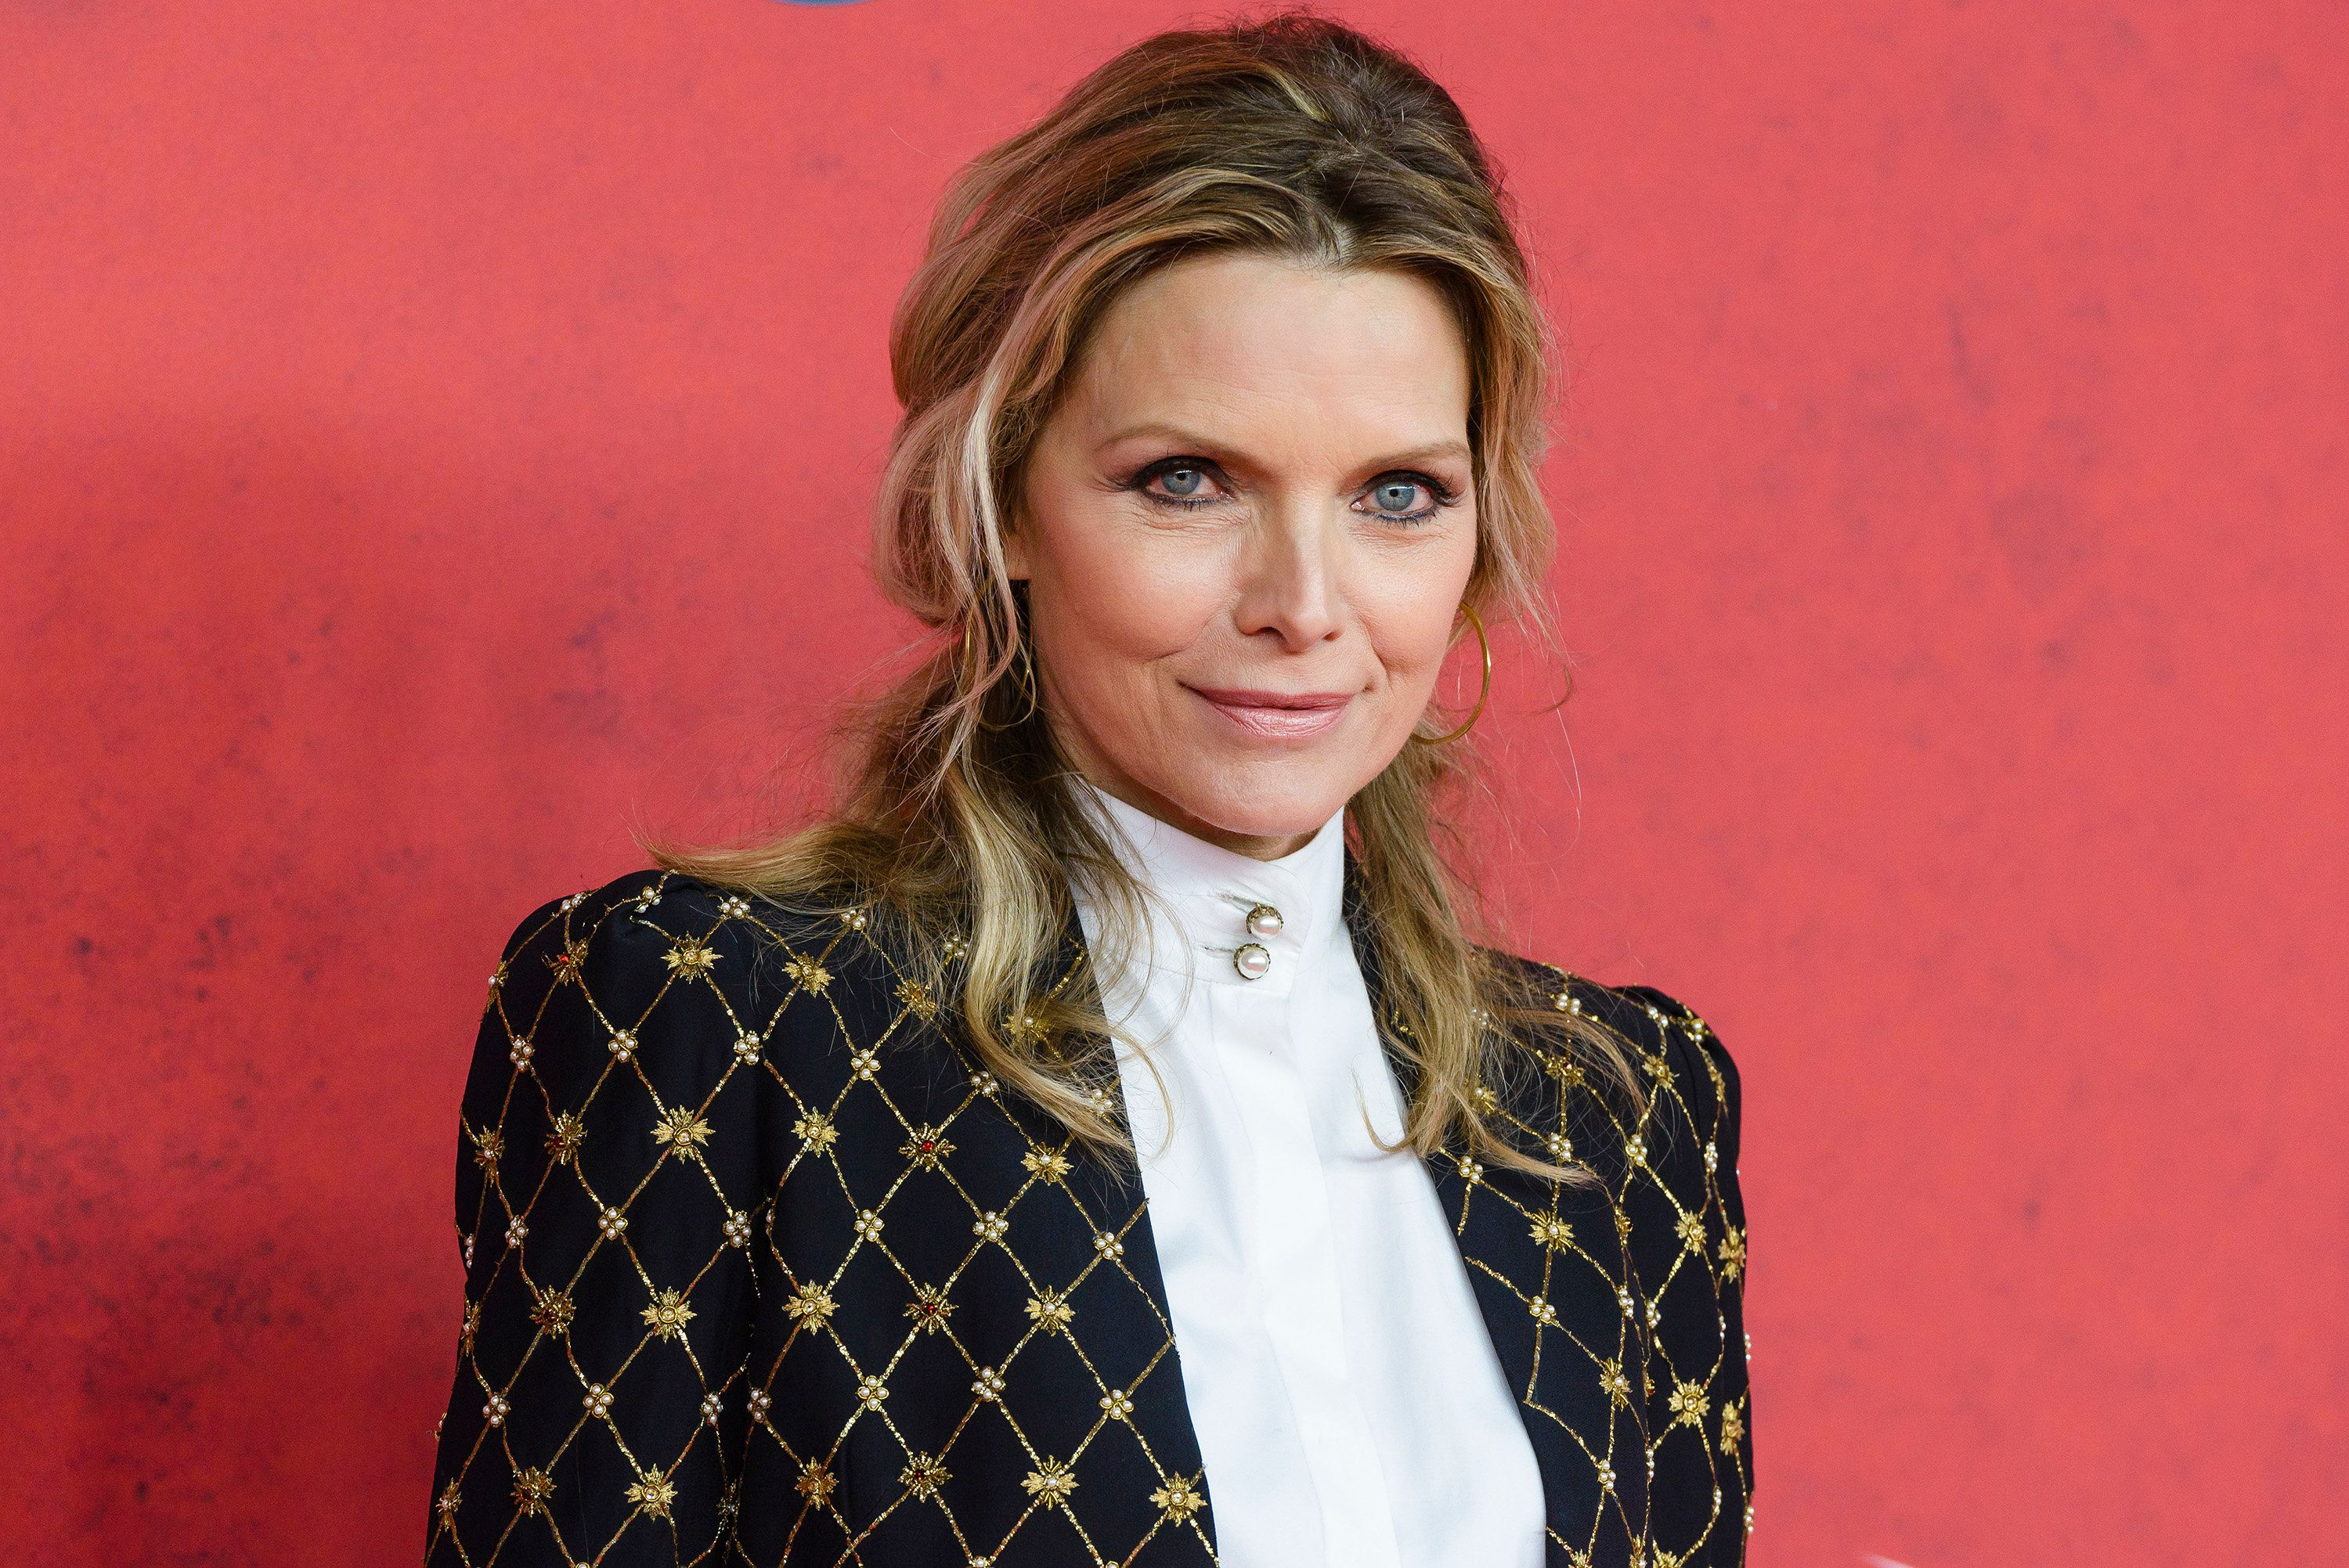 BERLIN, GERMANY - OCTOBER 15:  Michelle Pfeiffer attends the 'Malavita' premiere at Kino in der Kulturbrauerei on October 15, 2013 in Berlin, Germany.  (Photo by Clemens Bilan/Getty Images)